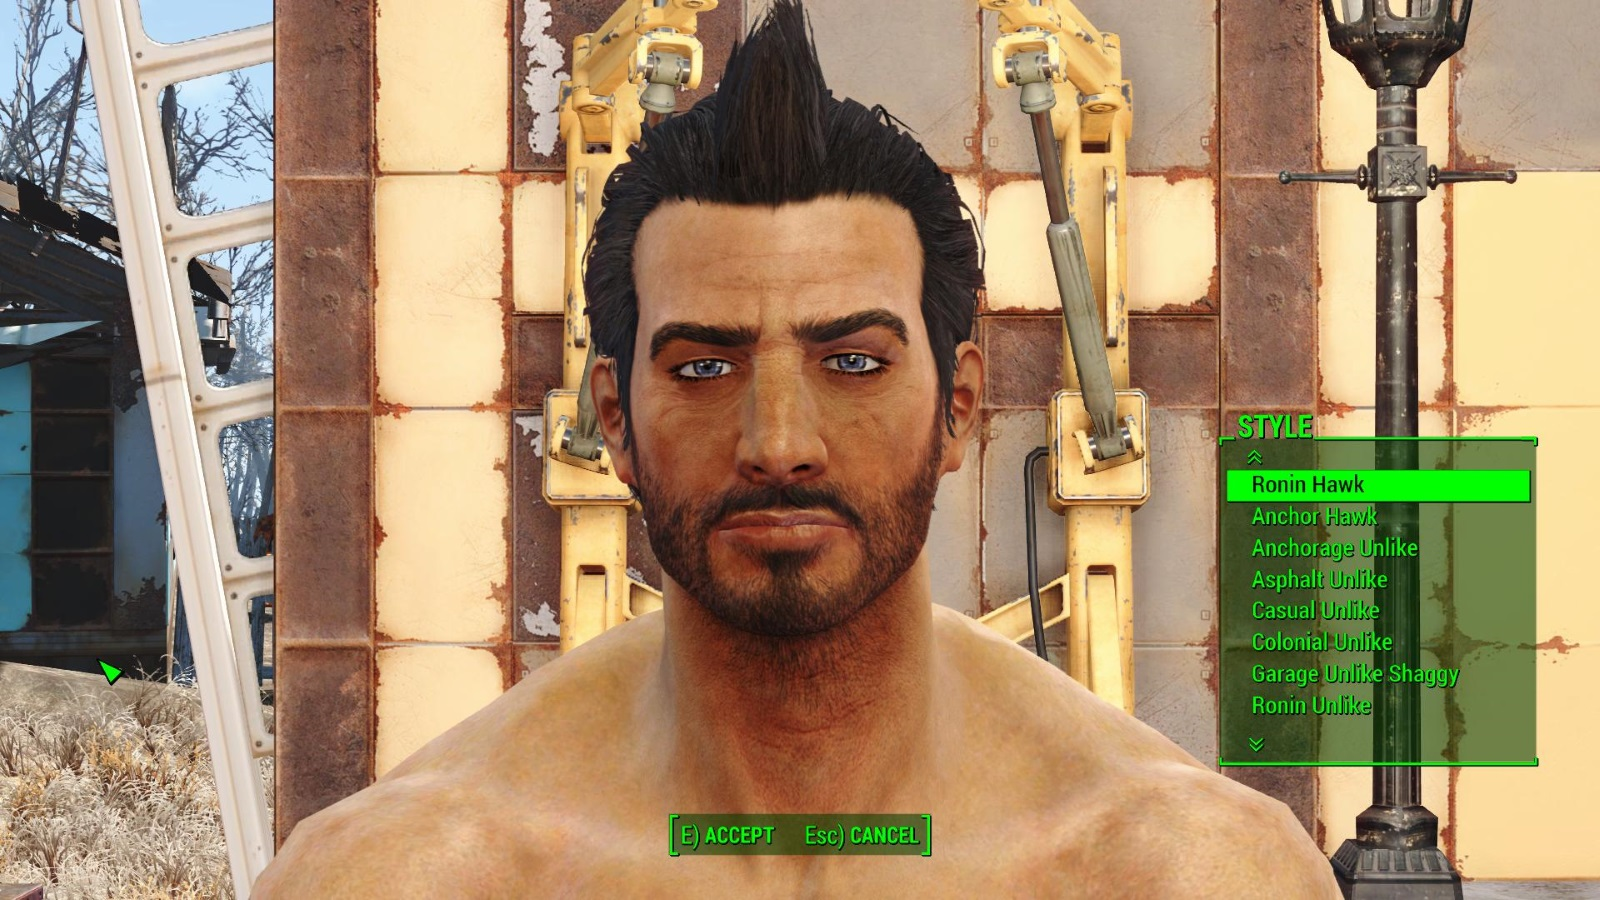 Admirable Lots More Male Hairstyles At Fallout 4 Nexus Mods And Community Short Hairstyles Gunalazisus